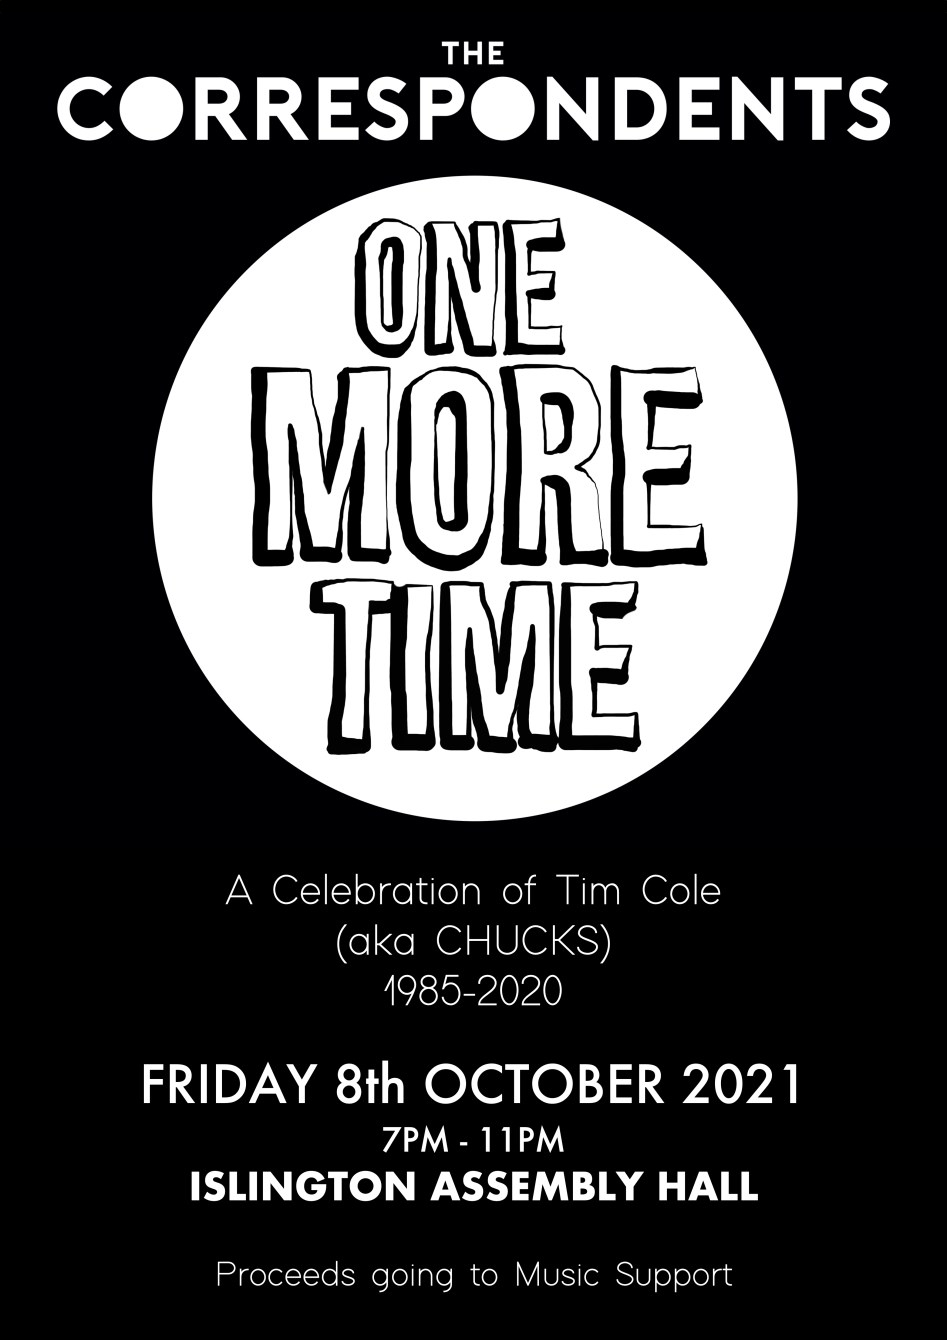 The Correspondents - One More Time - Flyer front